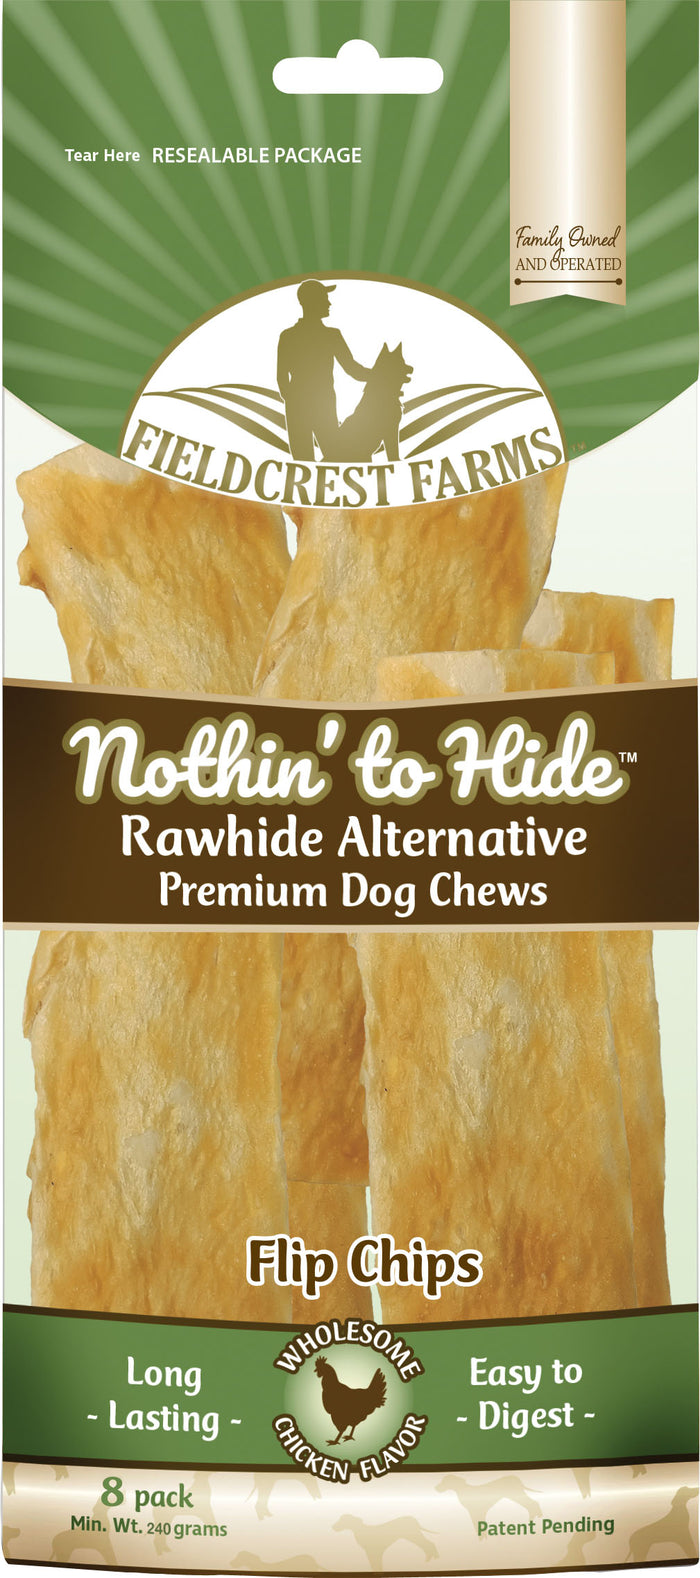 Nothin' To Hide Rawhide Alternative Flip Chips